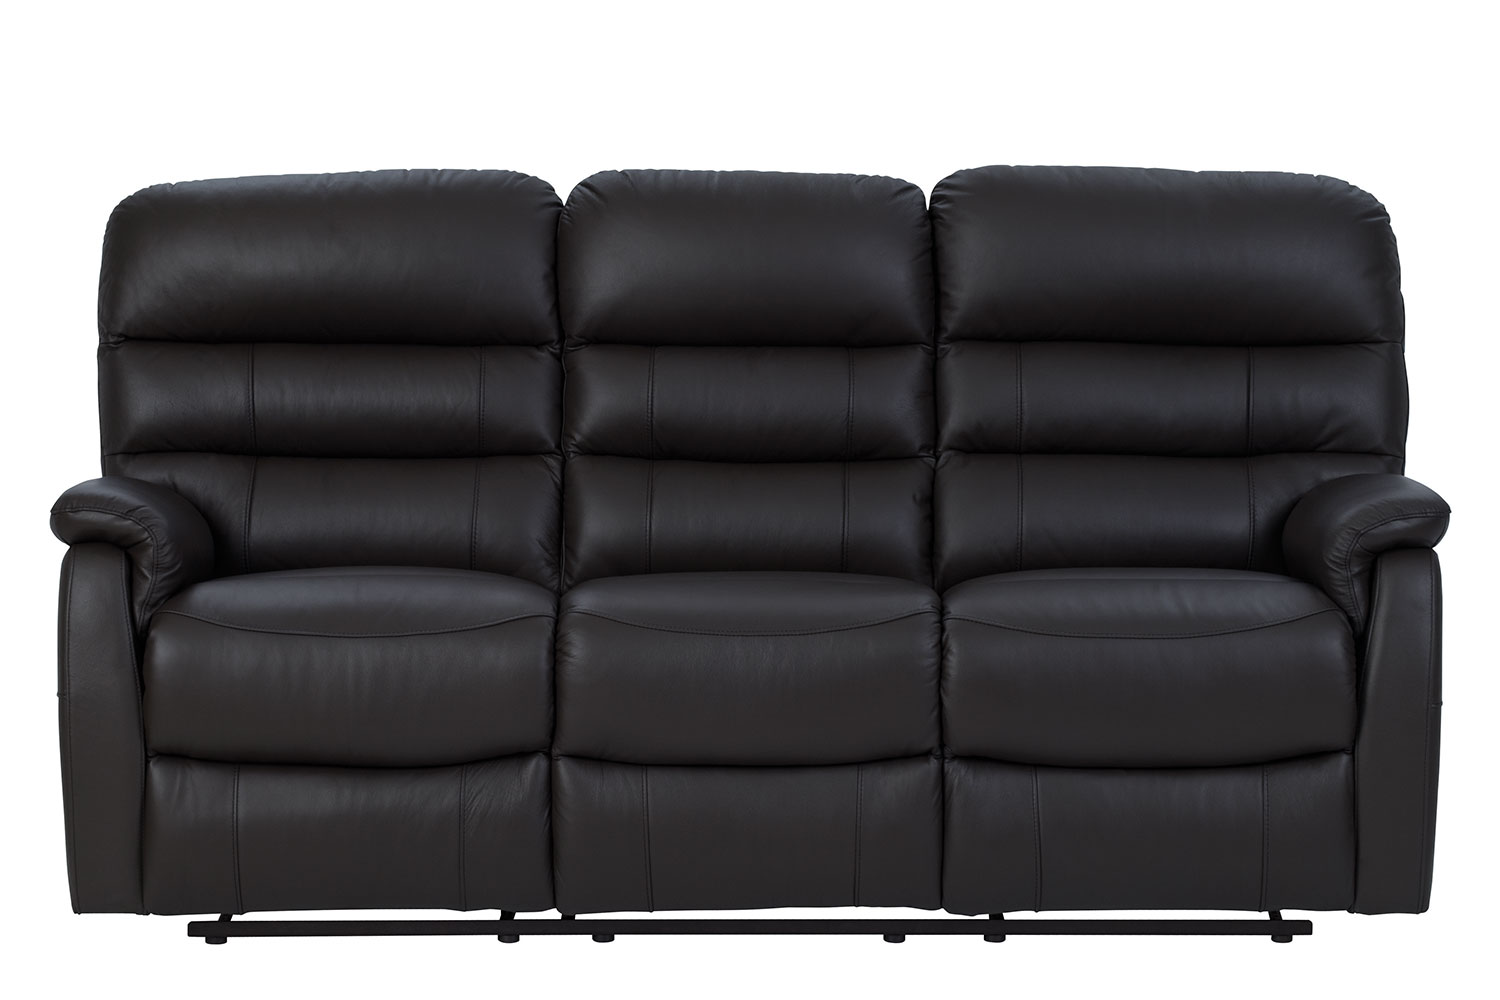 leather recliner chairs harvey norman panton bachelor chair luna 3 seater sofa by vivin